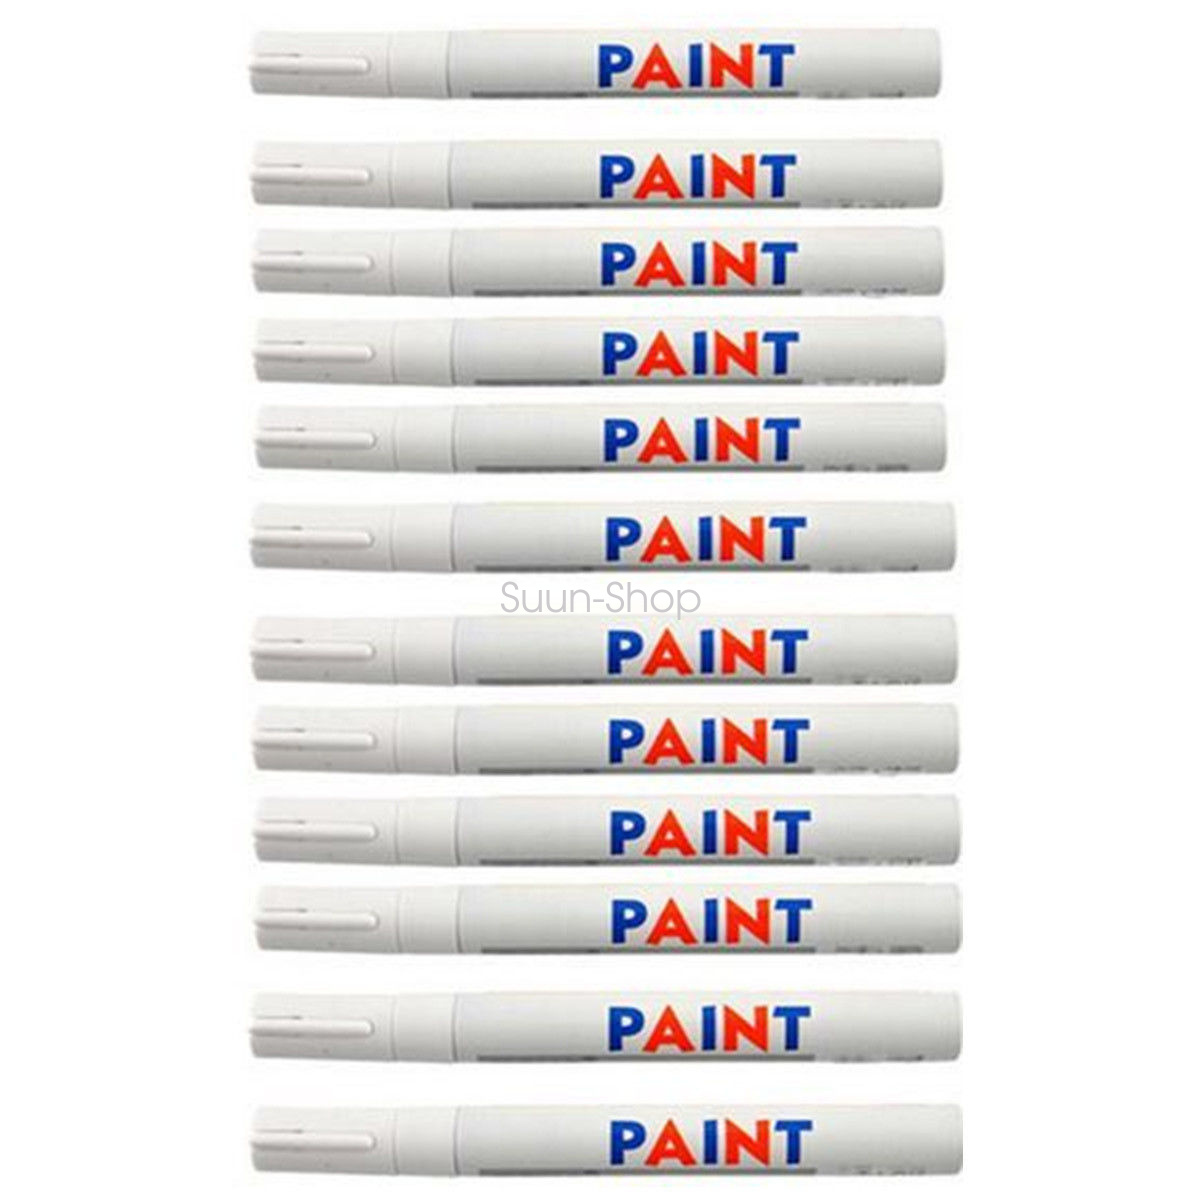 12pcs permanent car motorcycle tyre tire tread marker paint pen white waterproof ebay. Black Bedroom Furniture Sets. Home Design Ideas